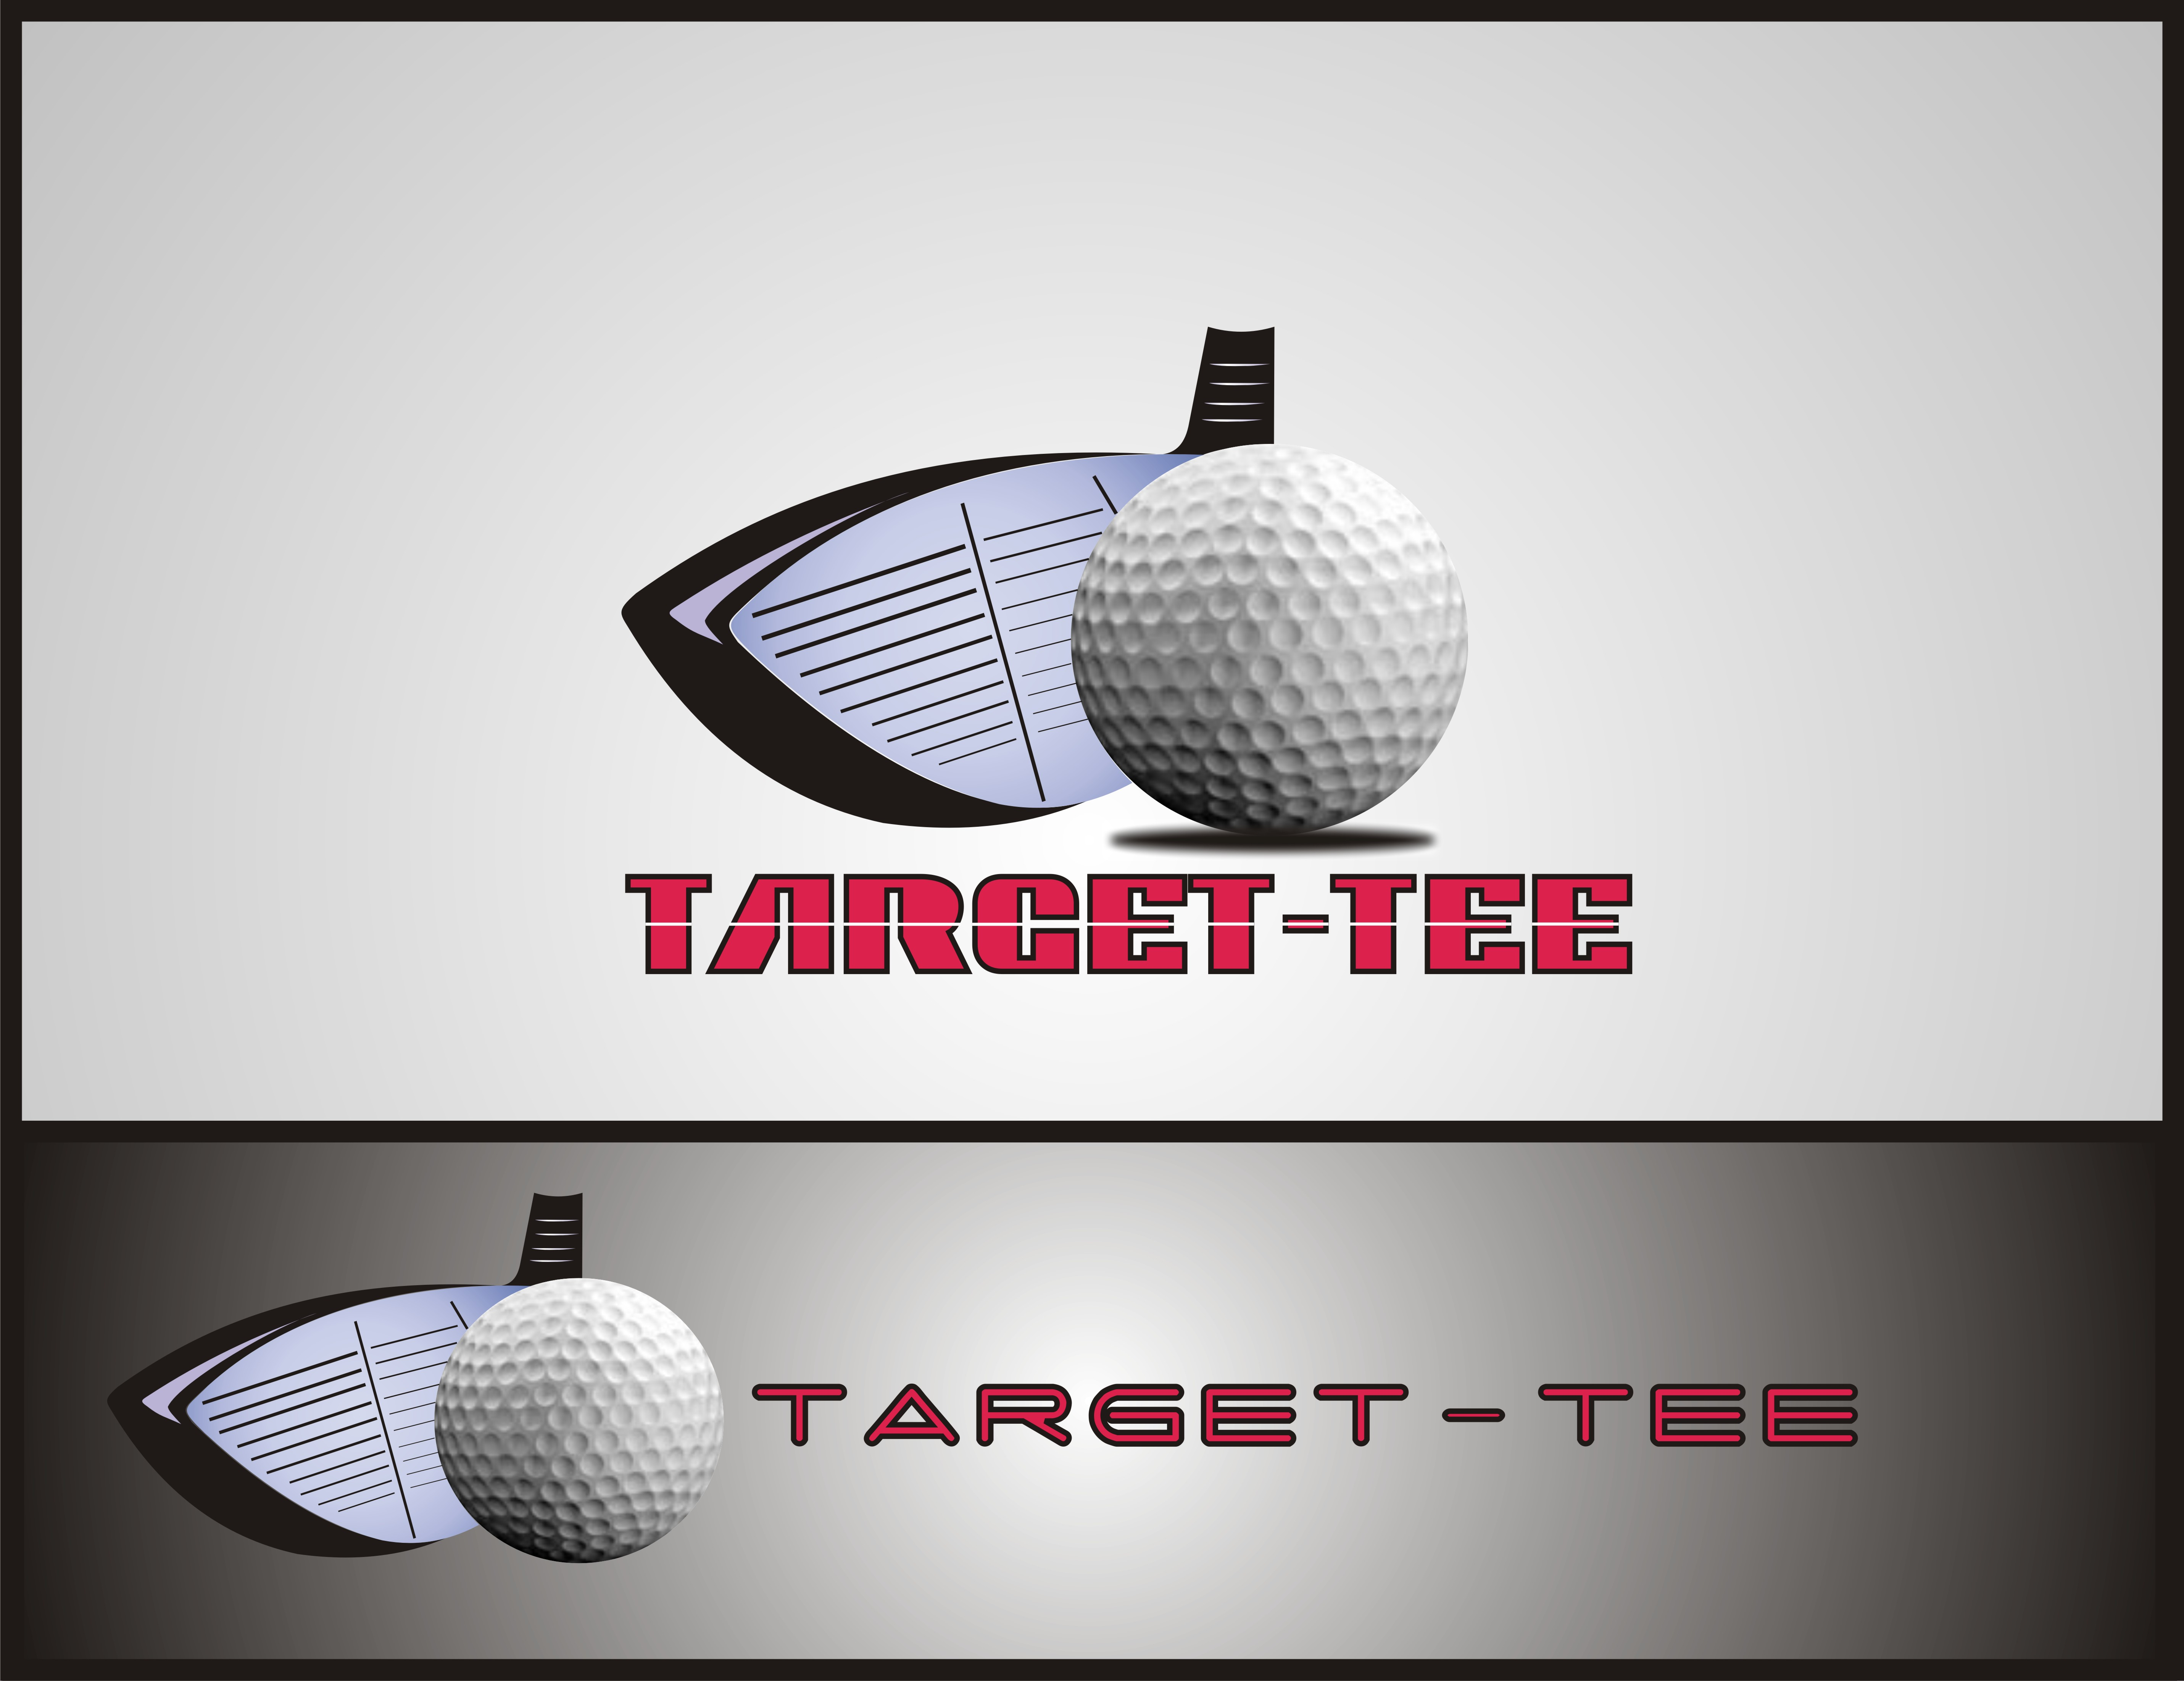 Logo Design by Bangun Prastyo - Entry No. 146 in the Logo Design Contest Imaginative Logo Design for TARGET-TEE.